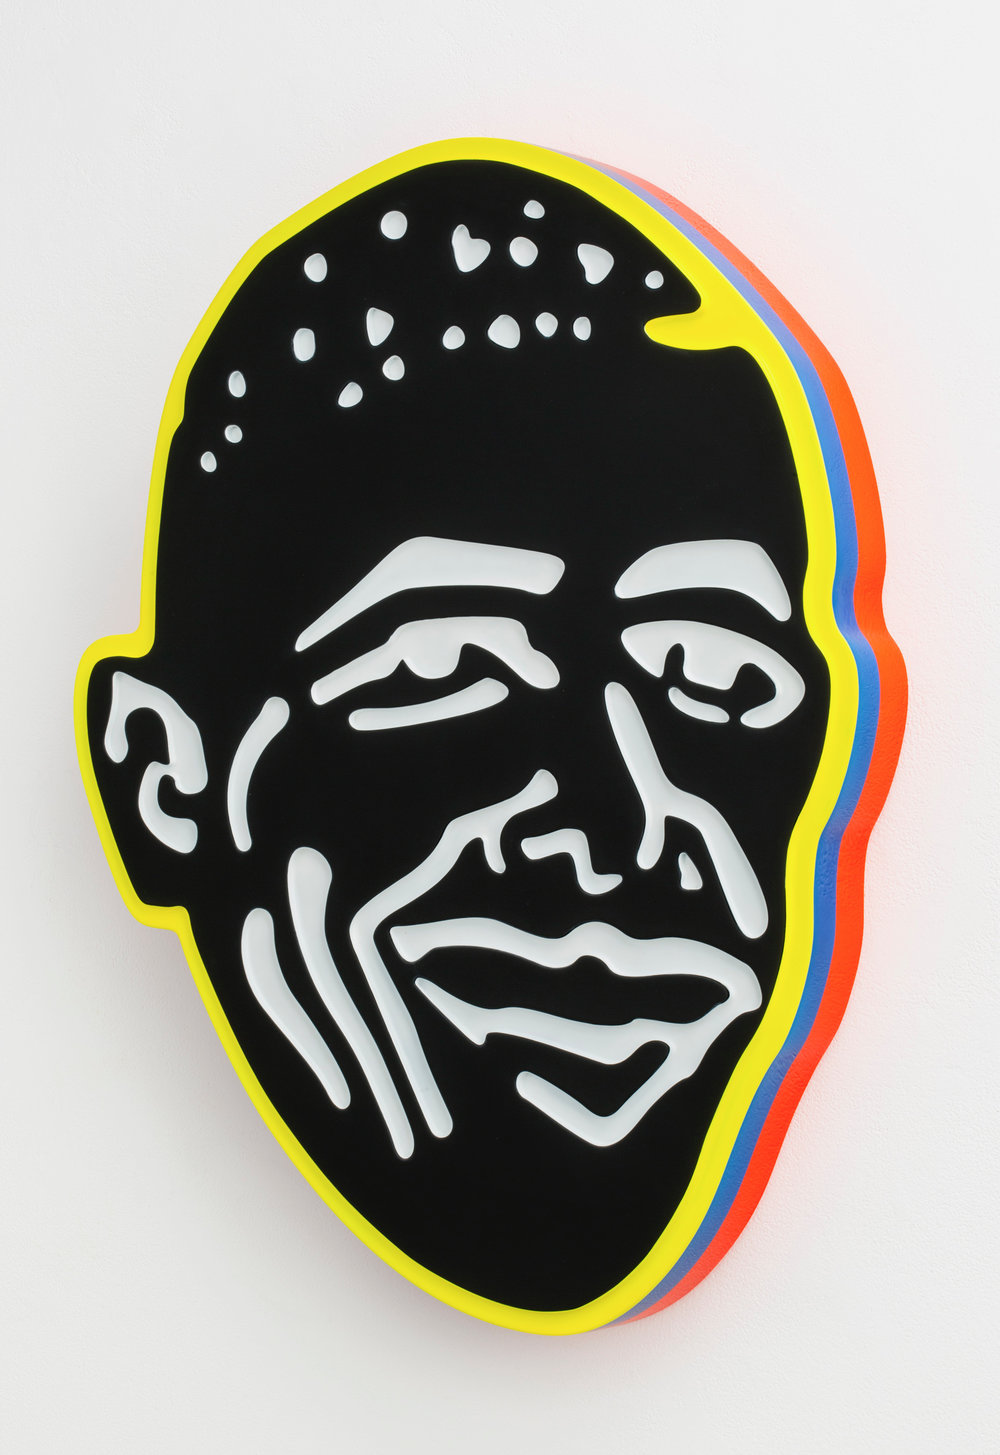 Beverly Fishman  -  Black and White Obama (Ecstasy) , 2013 Urethane on wood 34.5h x 26w x 4d inches